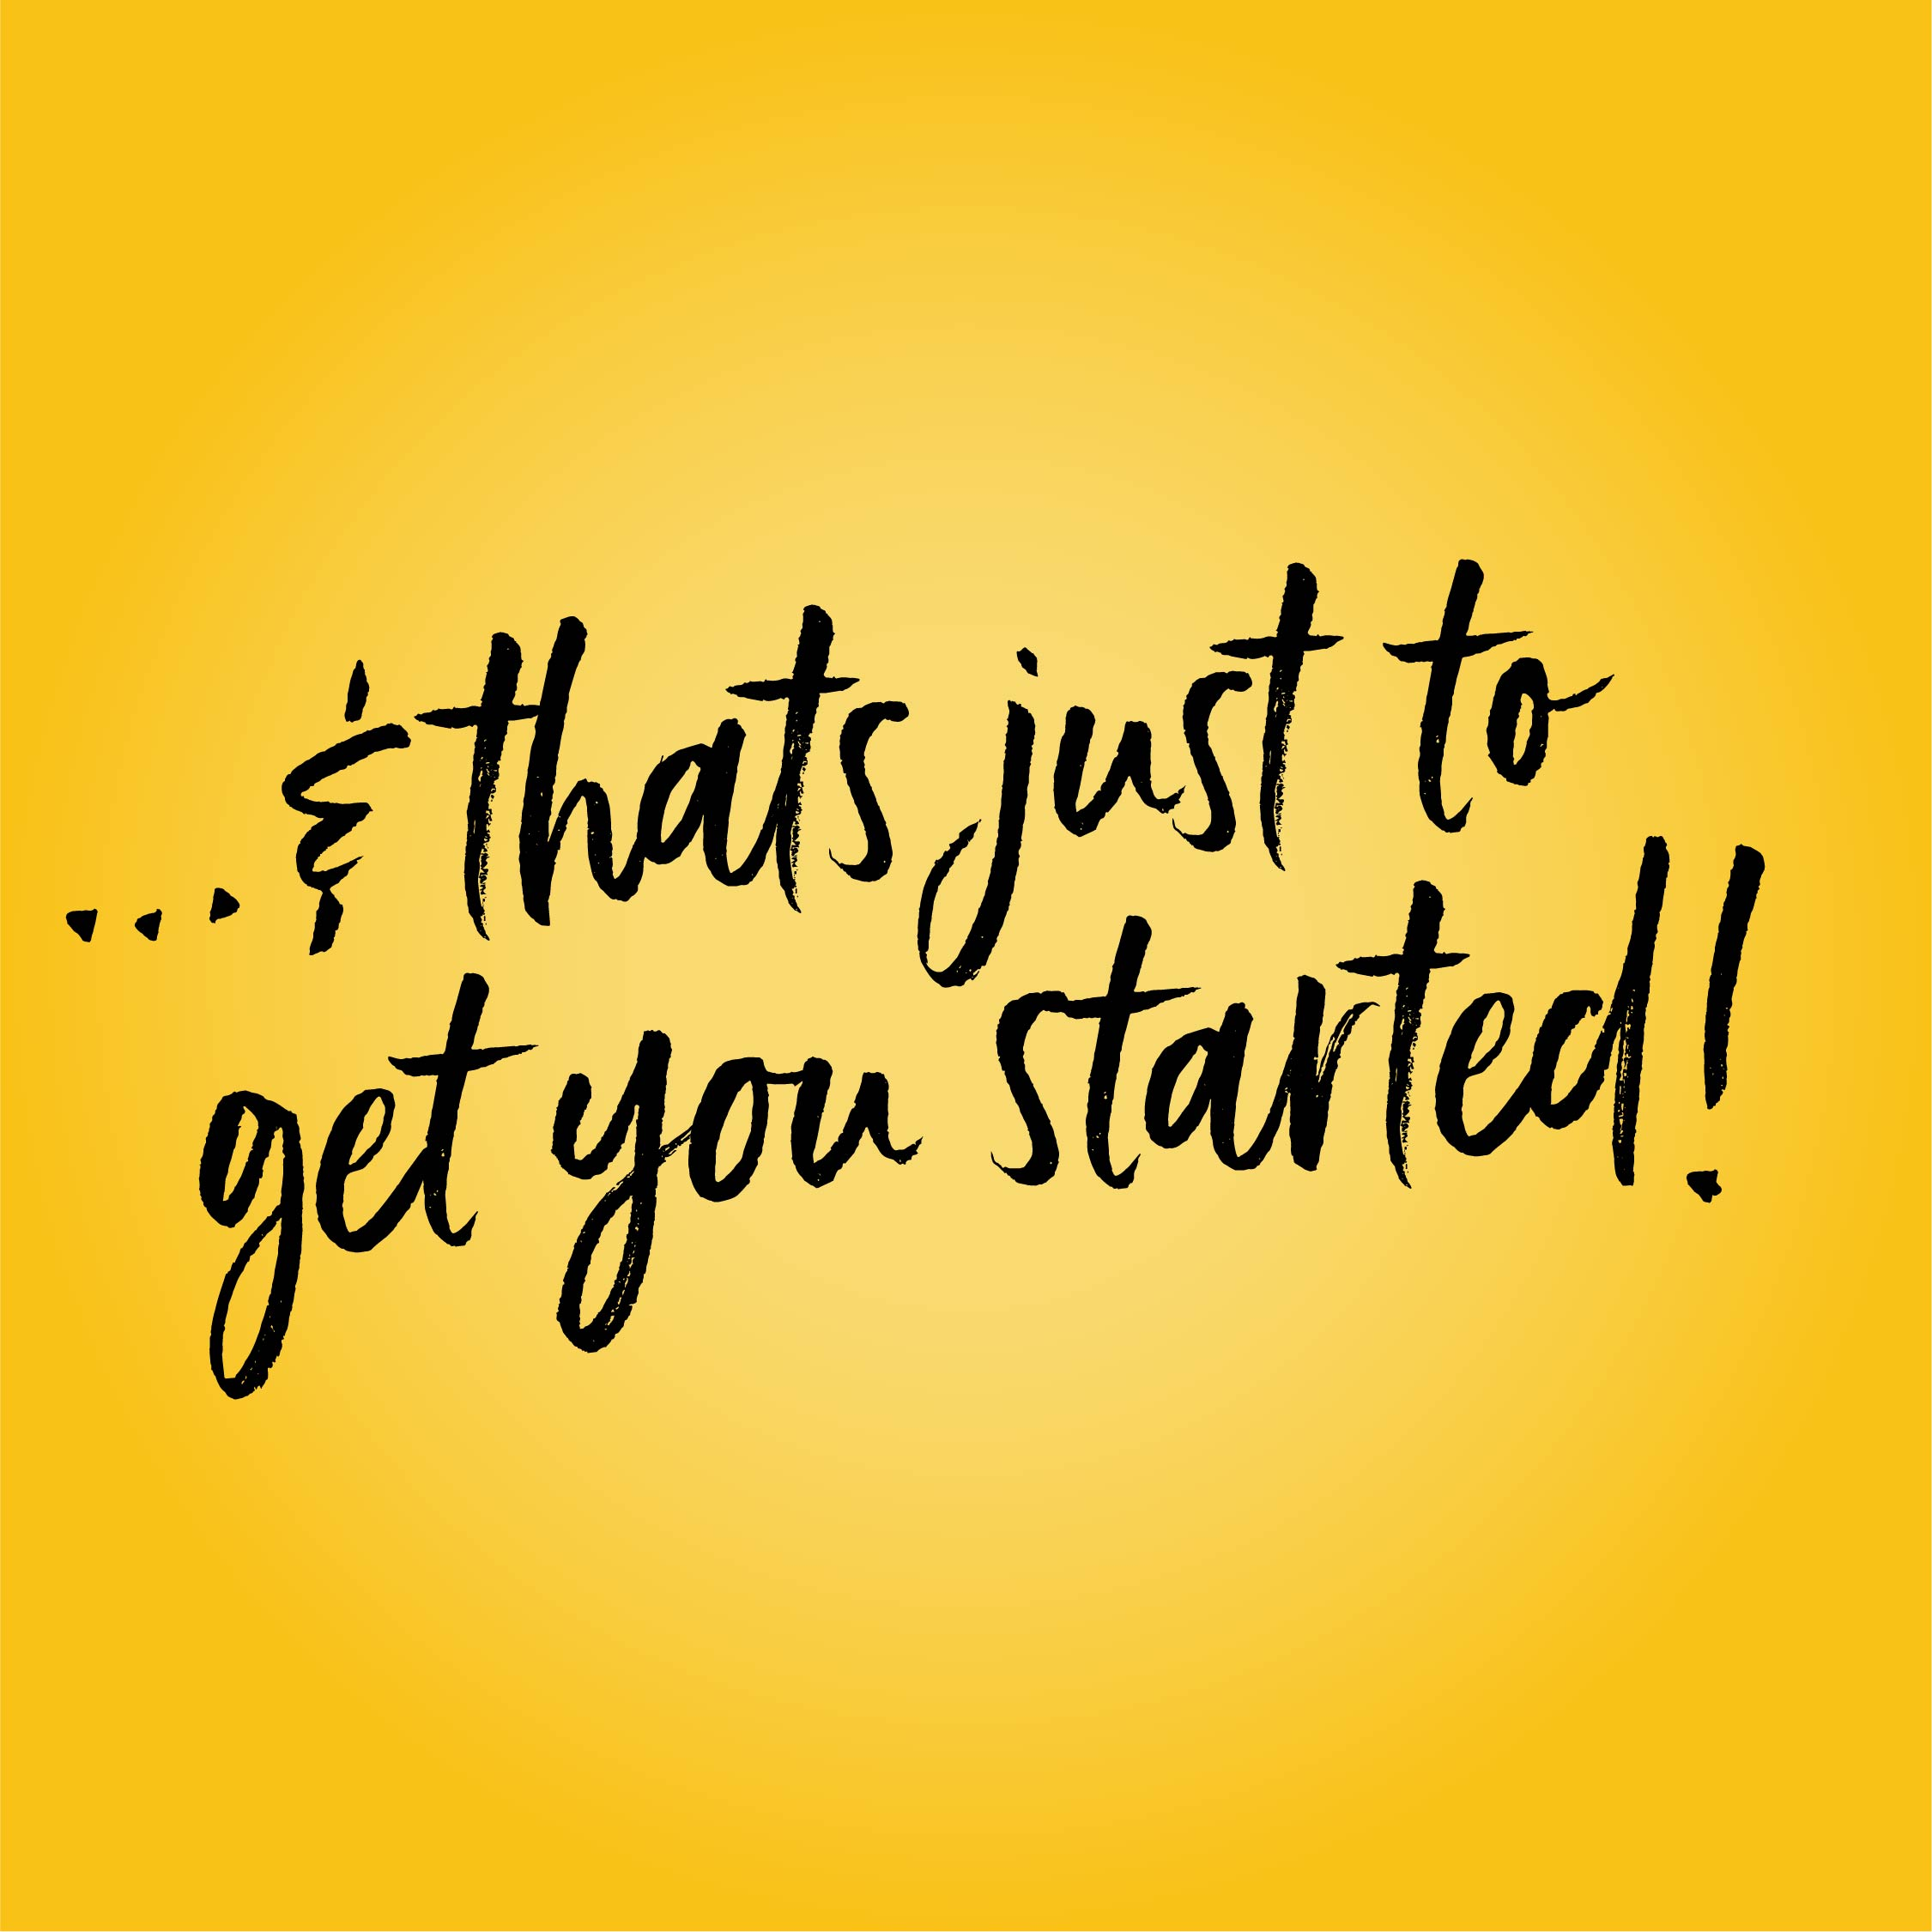 ...& that's just to get you started!